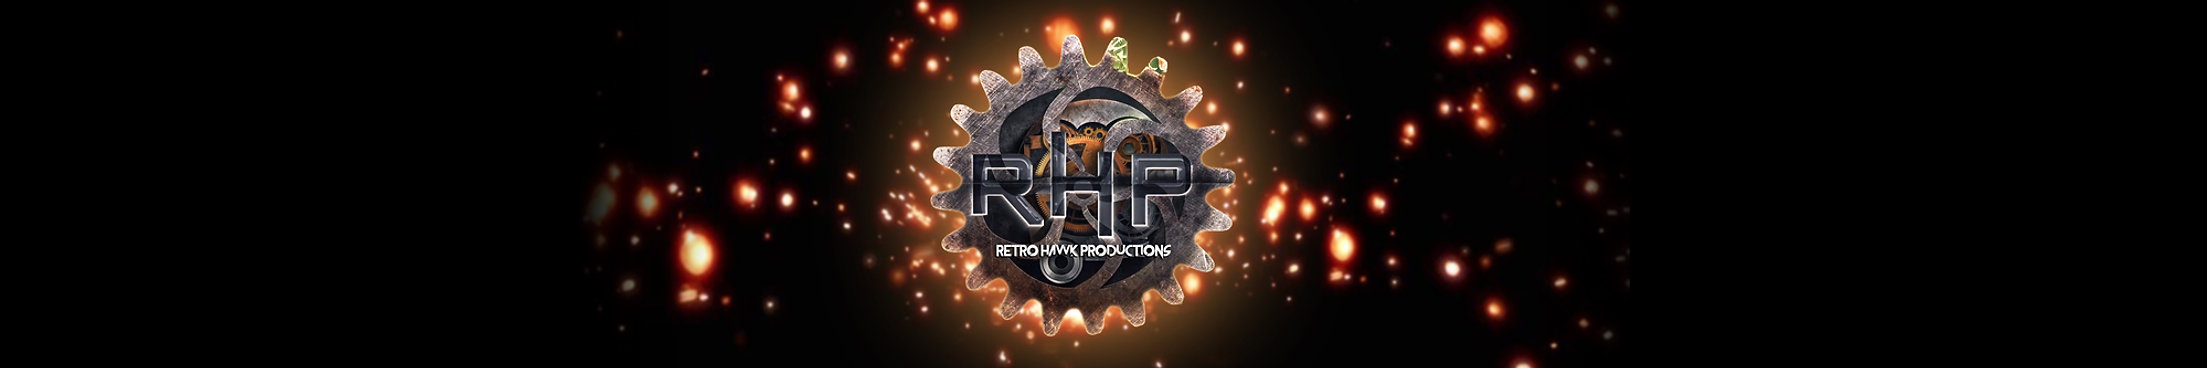 Retro Hawk Productions | Missouri Independant Film Maker | Indie Filmmaker